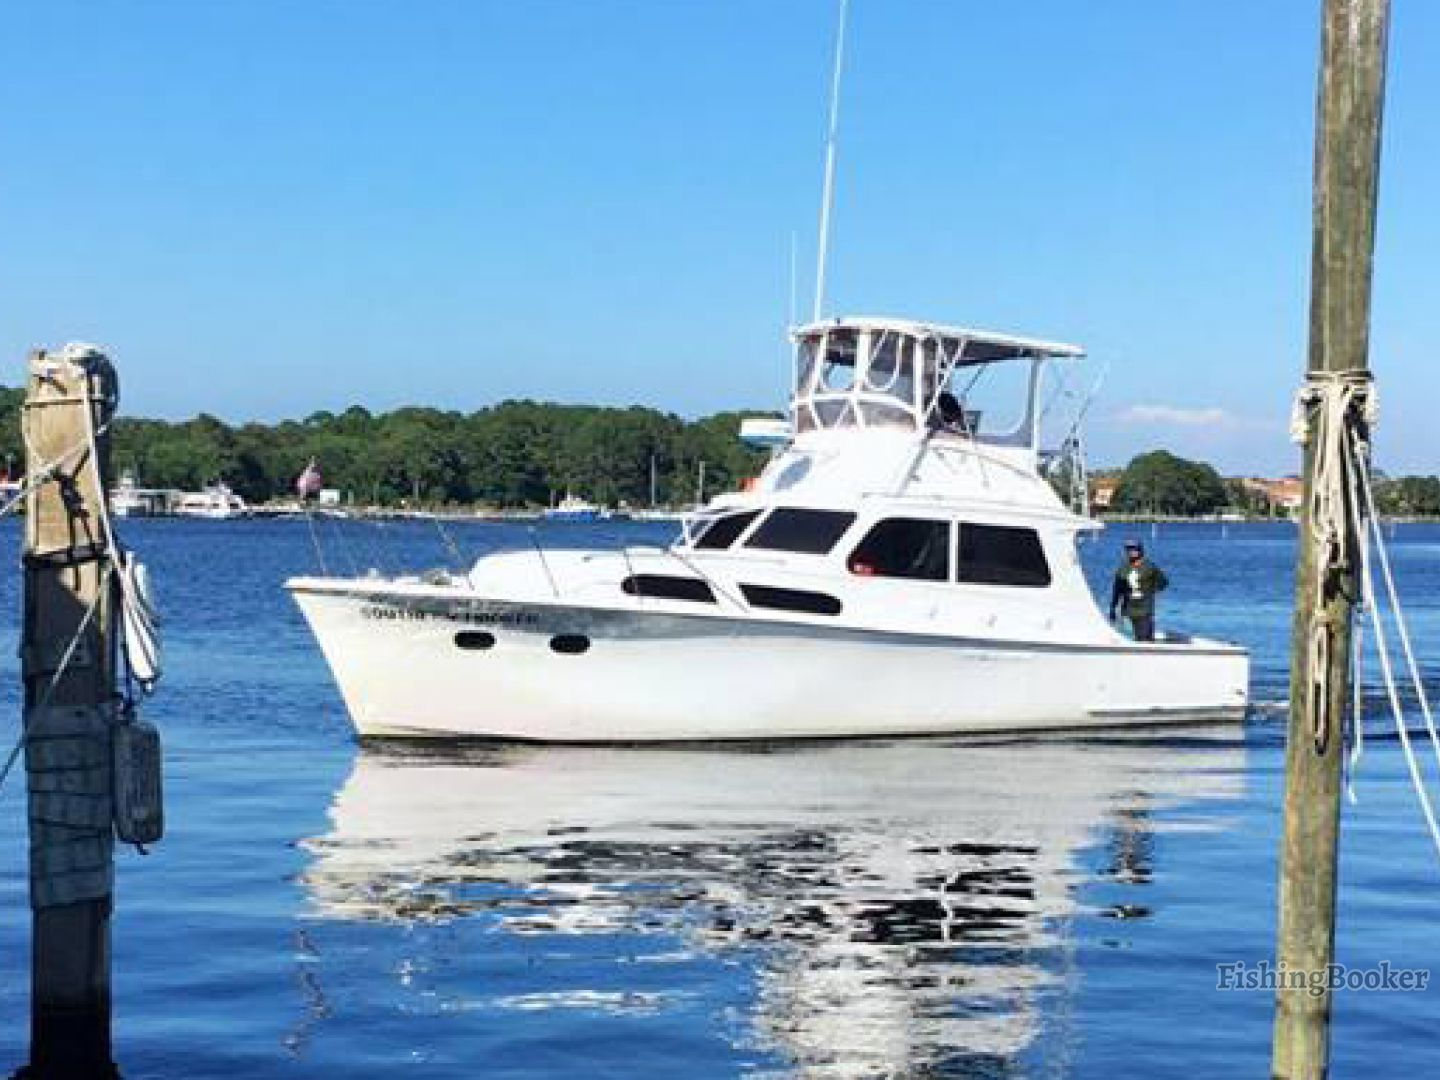 Southern hooker fishing charters panama city beach for Panama city beach charter fishing